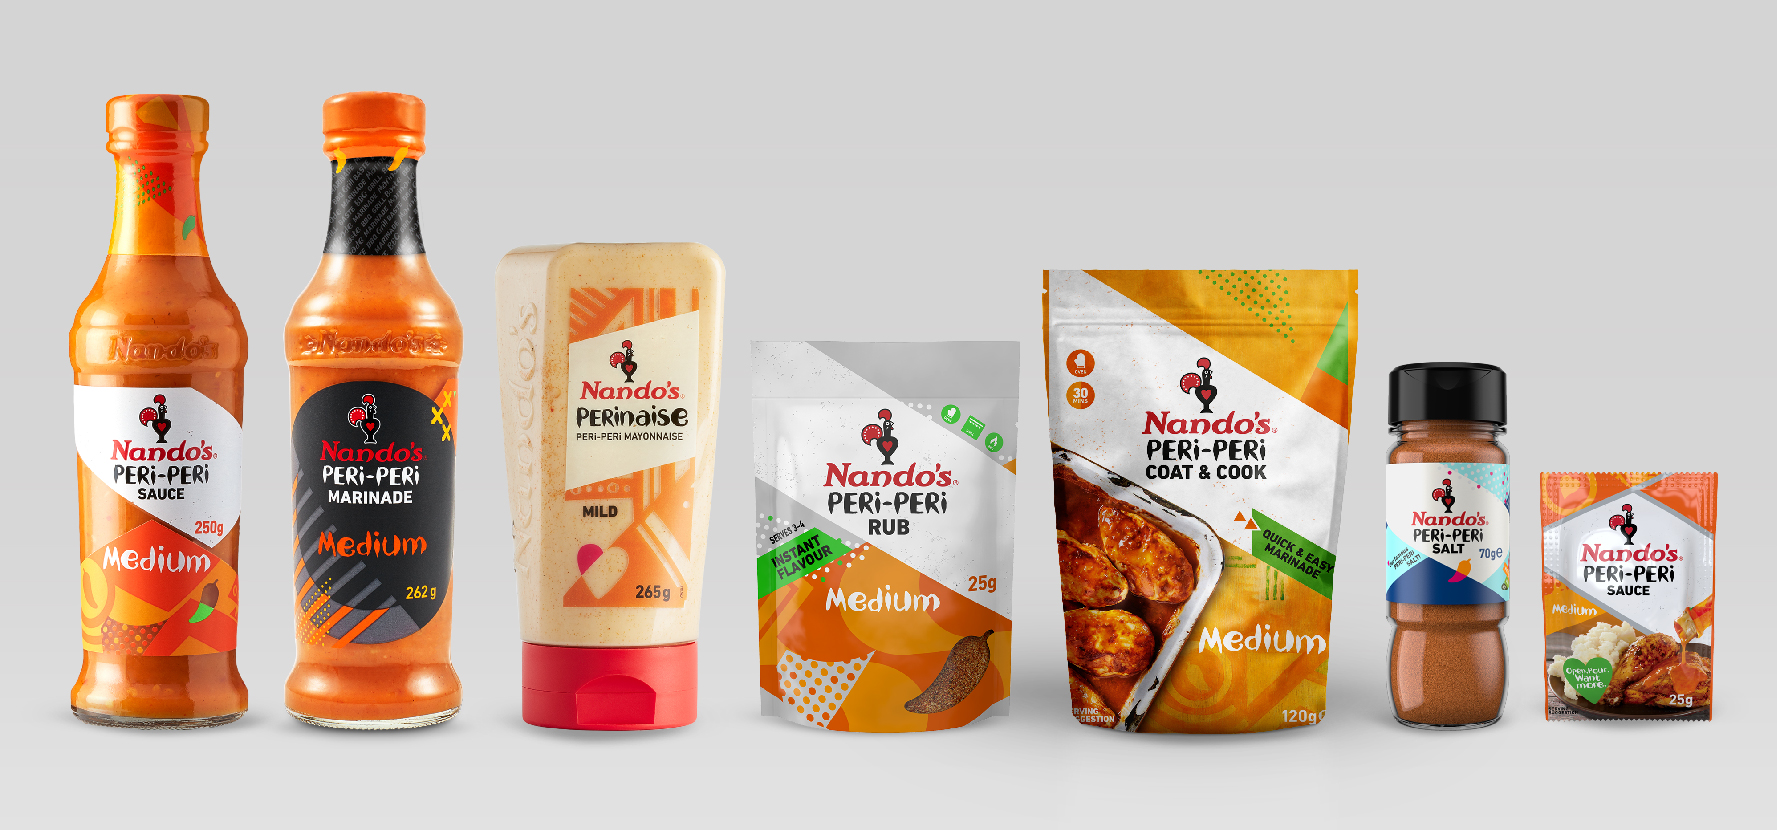 Nando's PERi-PERi packaging new